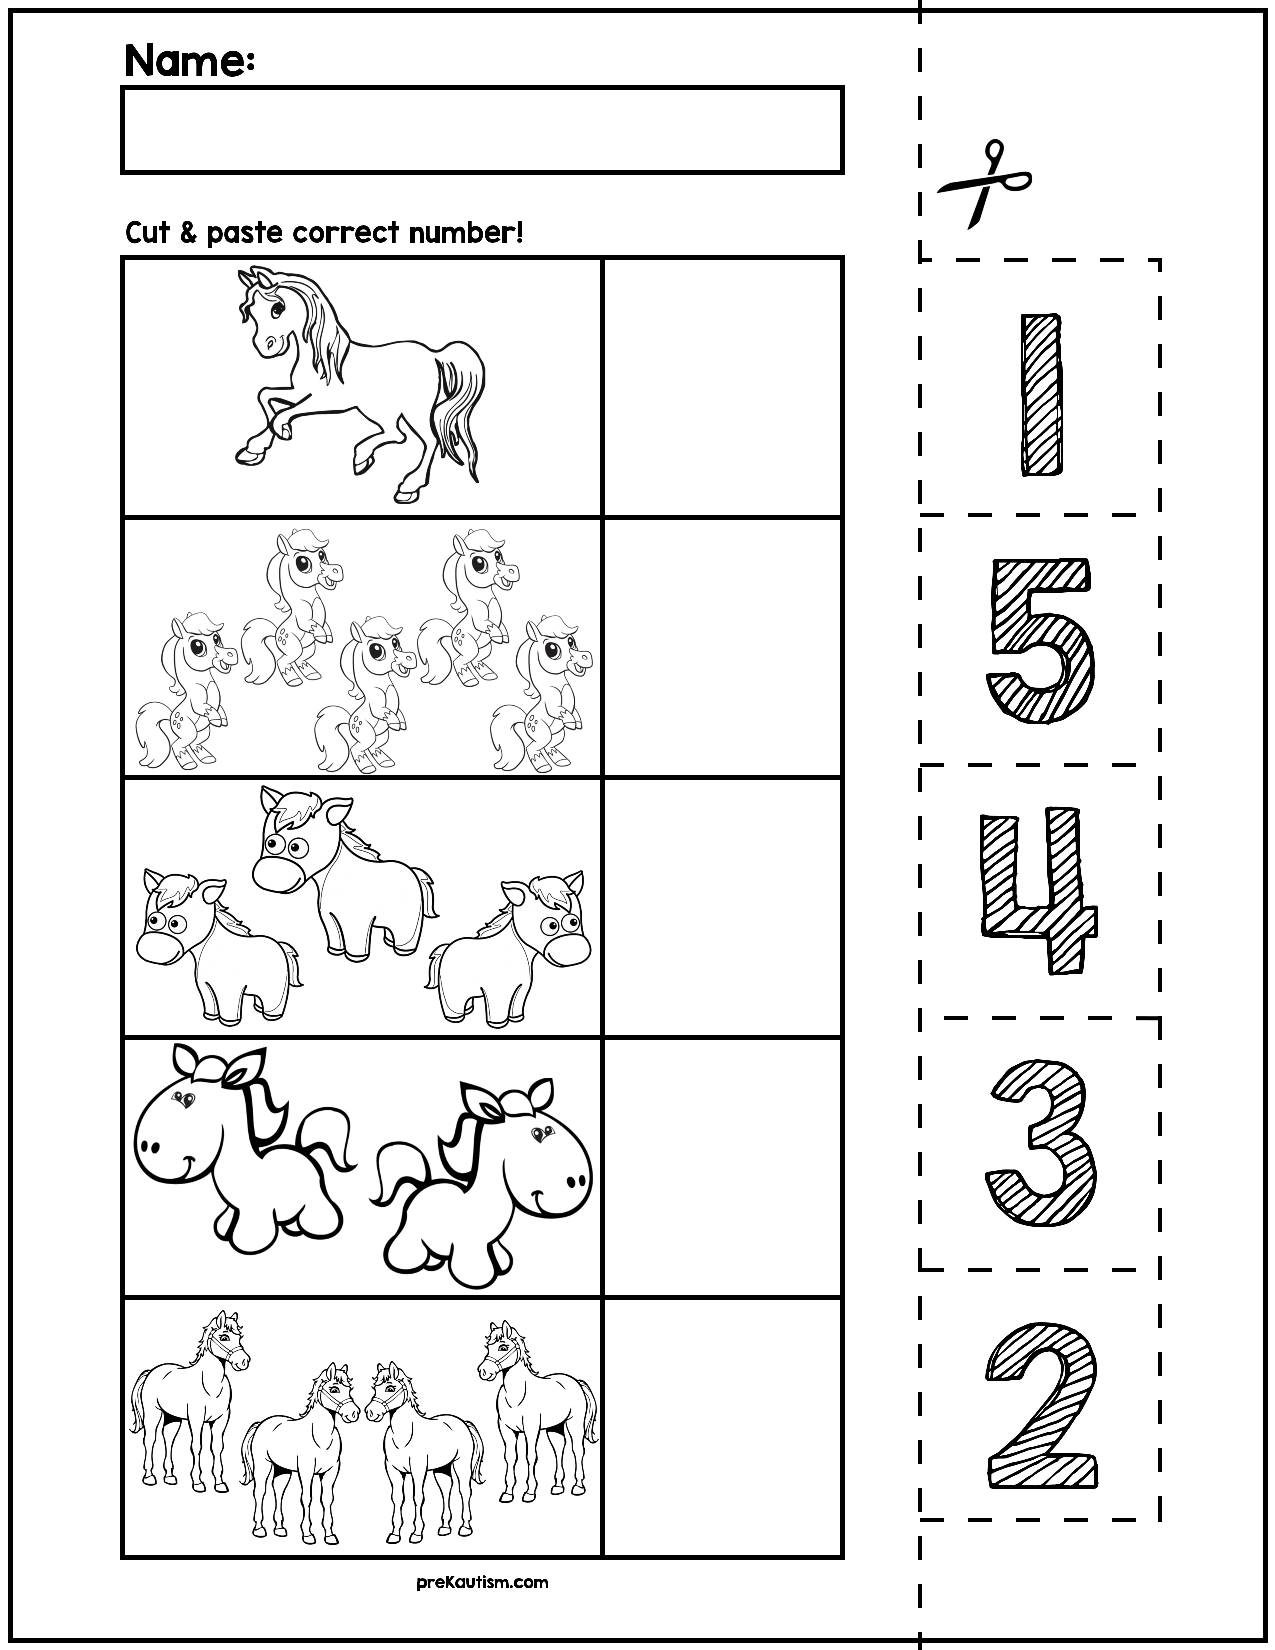 11 Best Cut And Paste Matching Worksheets Images On Best